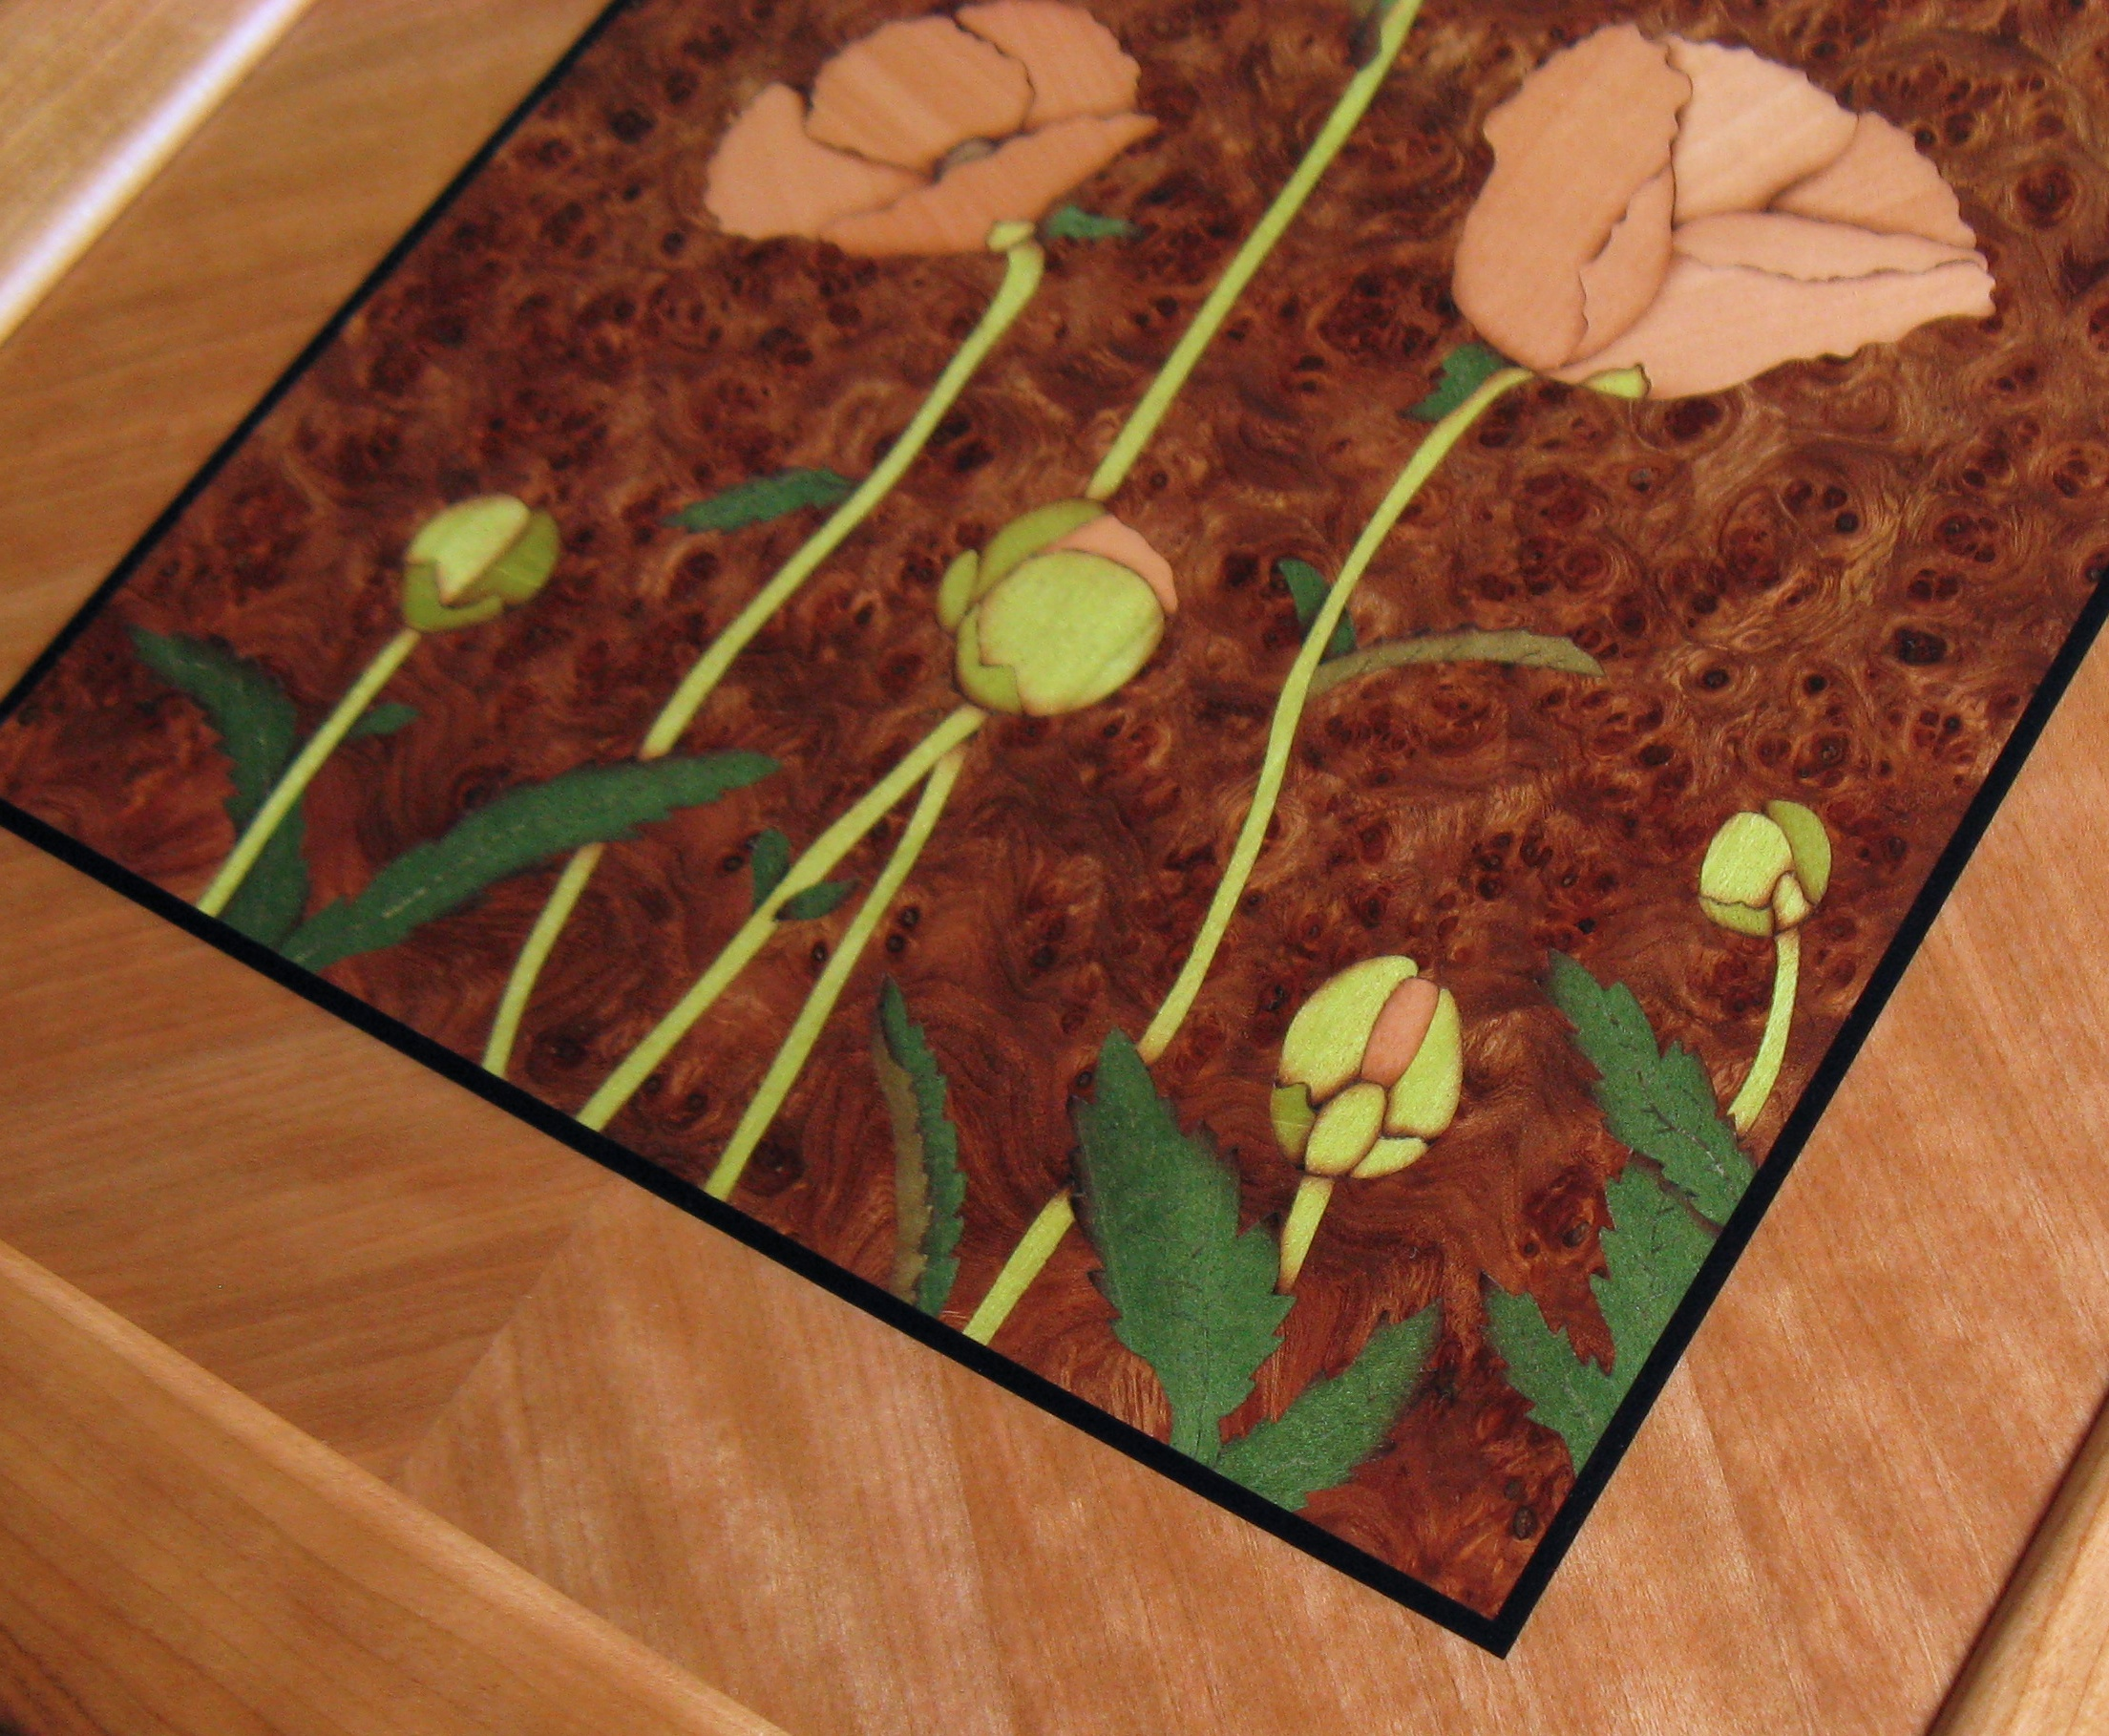 Poppy Art Panel Close Up detail Marquetry veneer wood